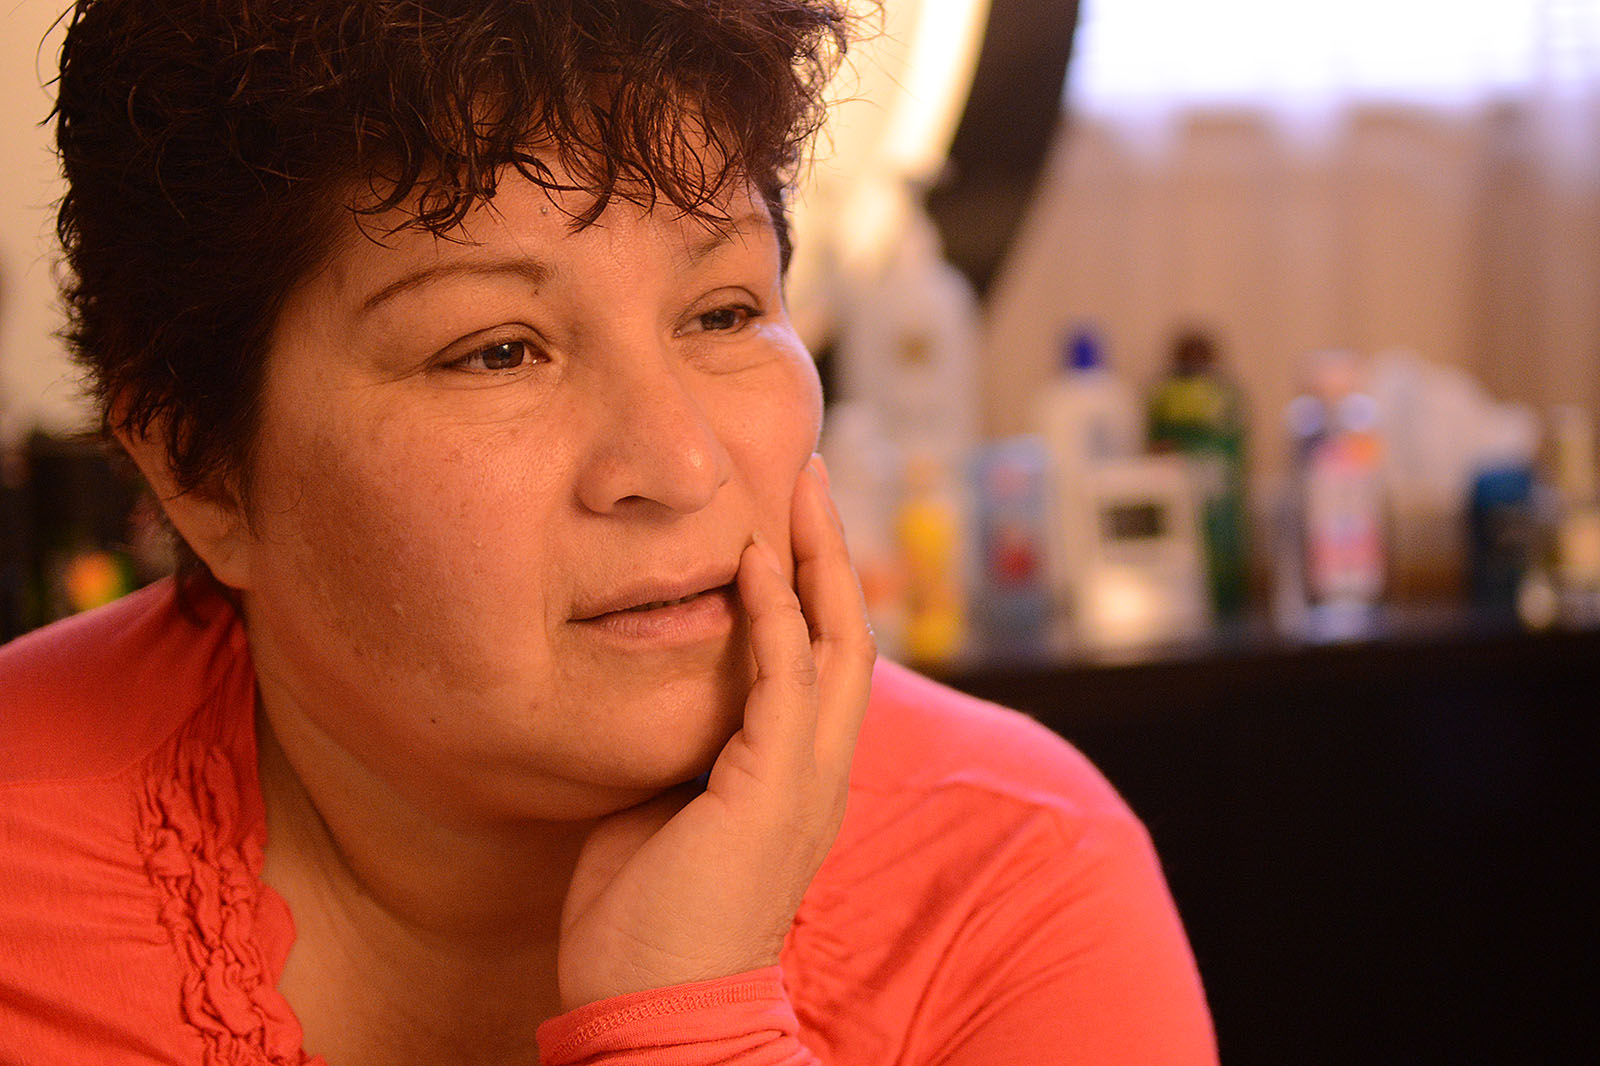 An Immigrant Woman's Nightmare Journey Into Post-Traumatic Stress